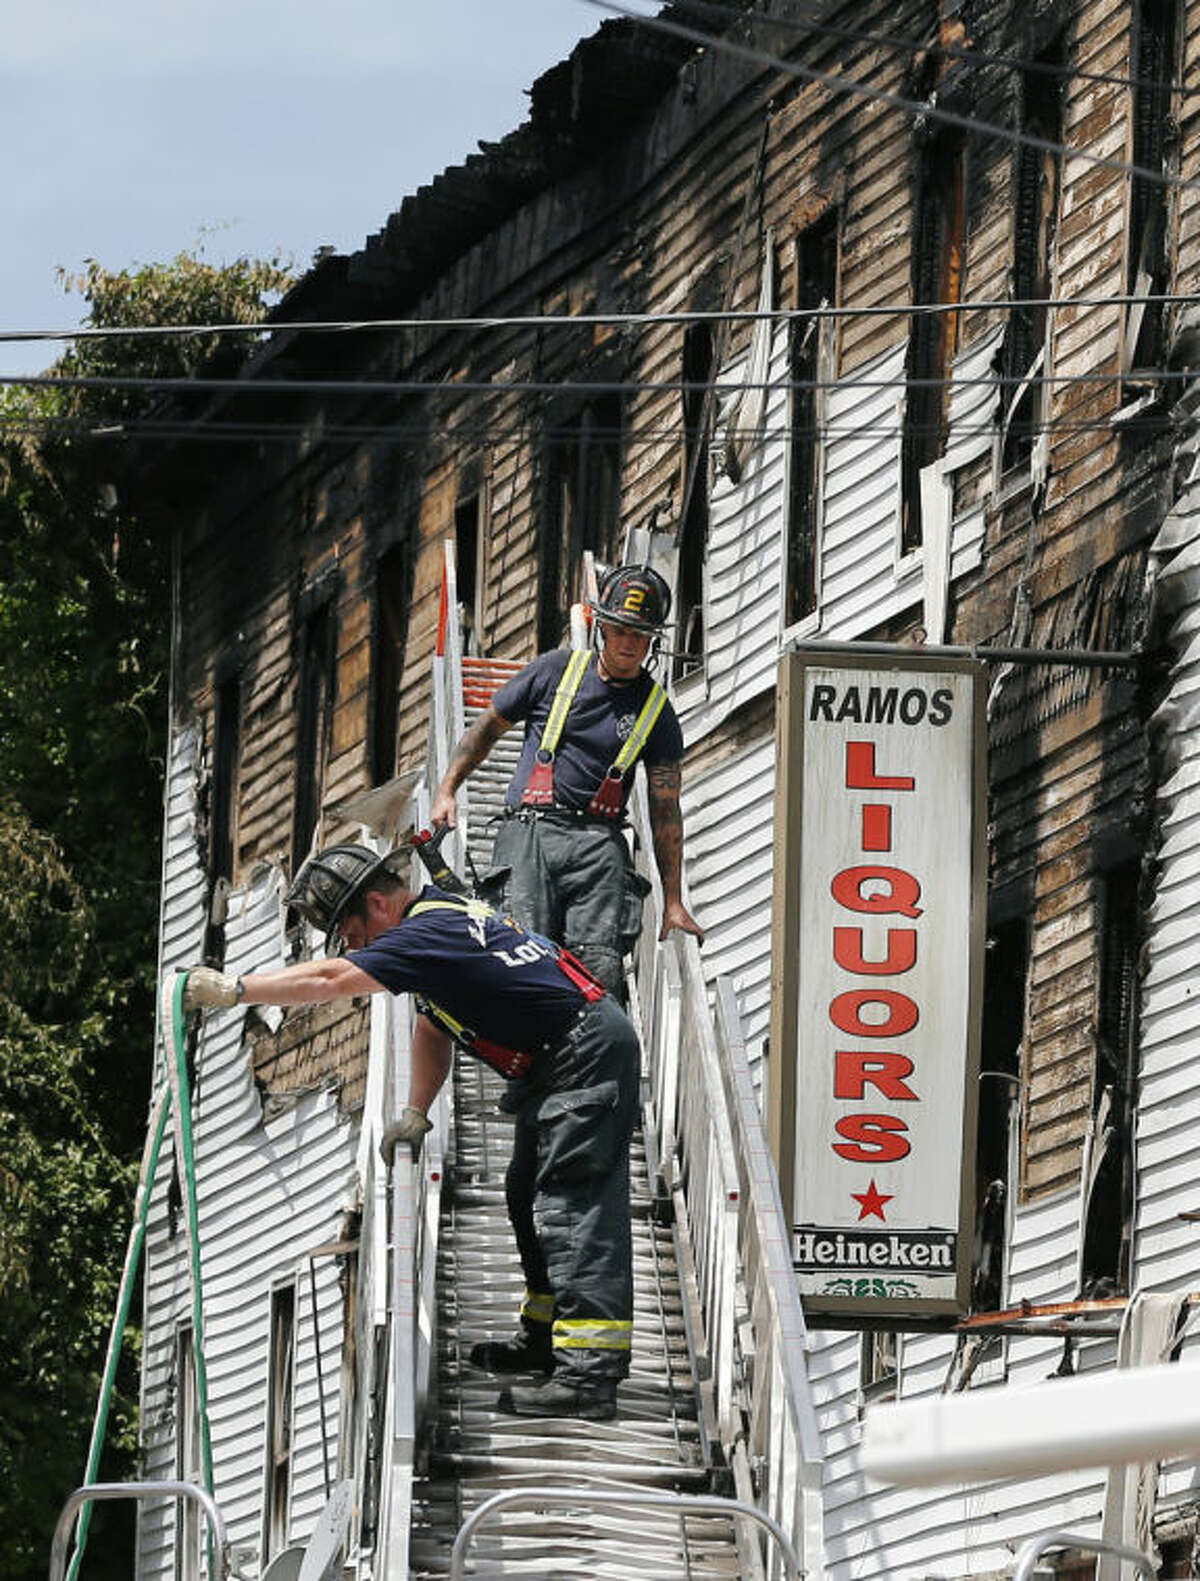 Firefighters work on a ladder outside a burned three-story apartment and business building in Lowell, Mass., Thursday, July 10, 2014, where officials said four adults and three children died in a fast-moving pre-dawn fire. (AP Photo/Elise Amendola)